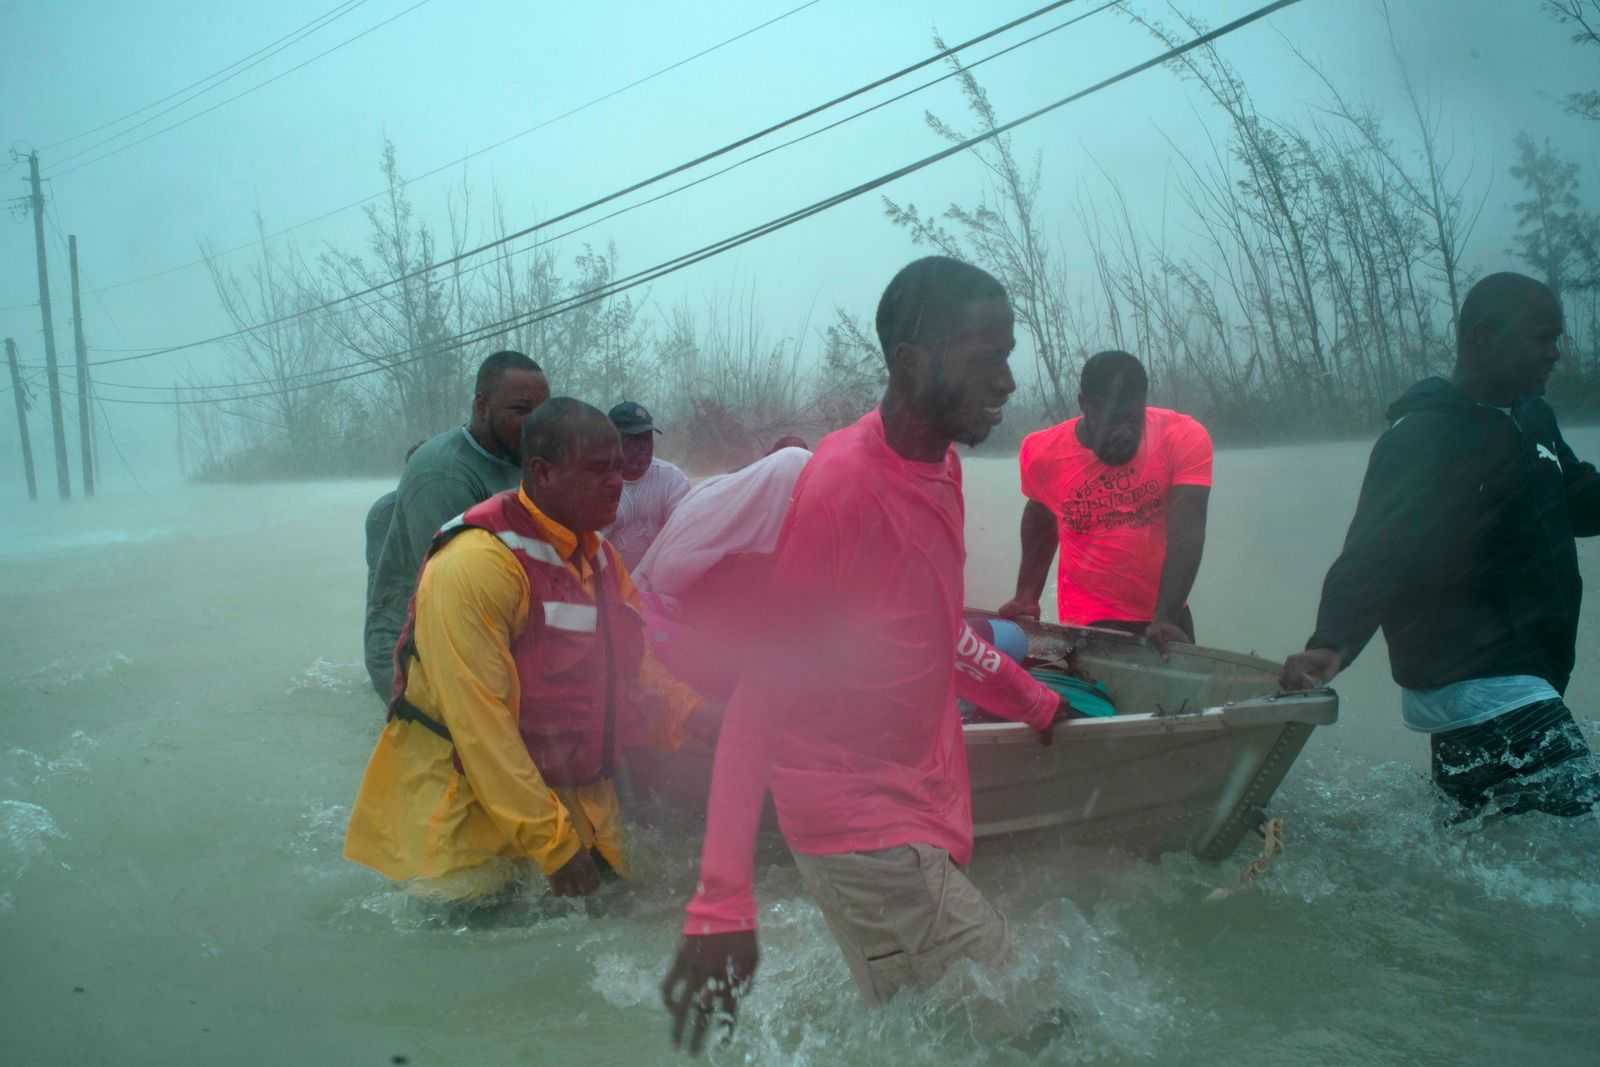 Volunteers rescue several families from the rising waters of Hurricane Dorian, near the Causarina bridge in Freeport, Grand Bahama, Bahamas, Tuesday, Sept. 3, 2019.{ } (AP Photo/Ramon Espinosa)